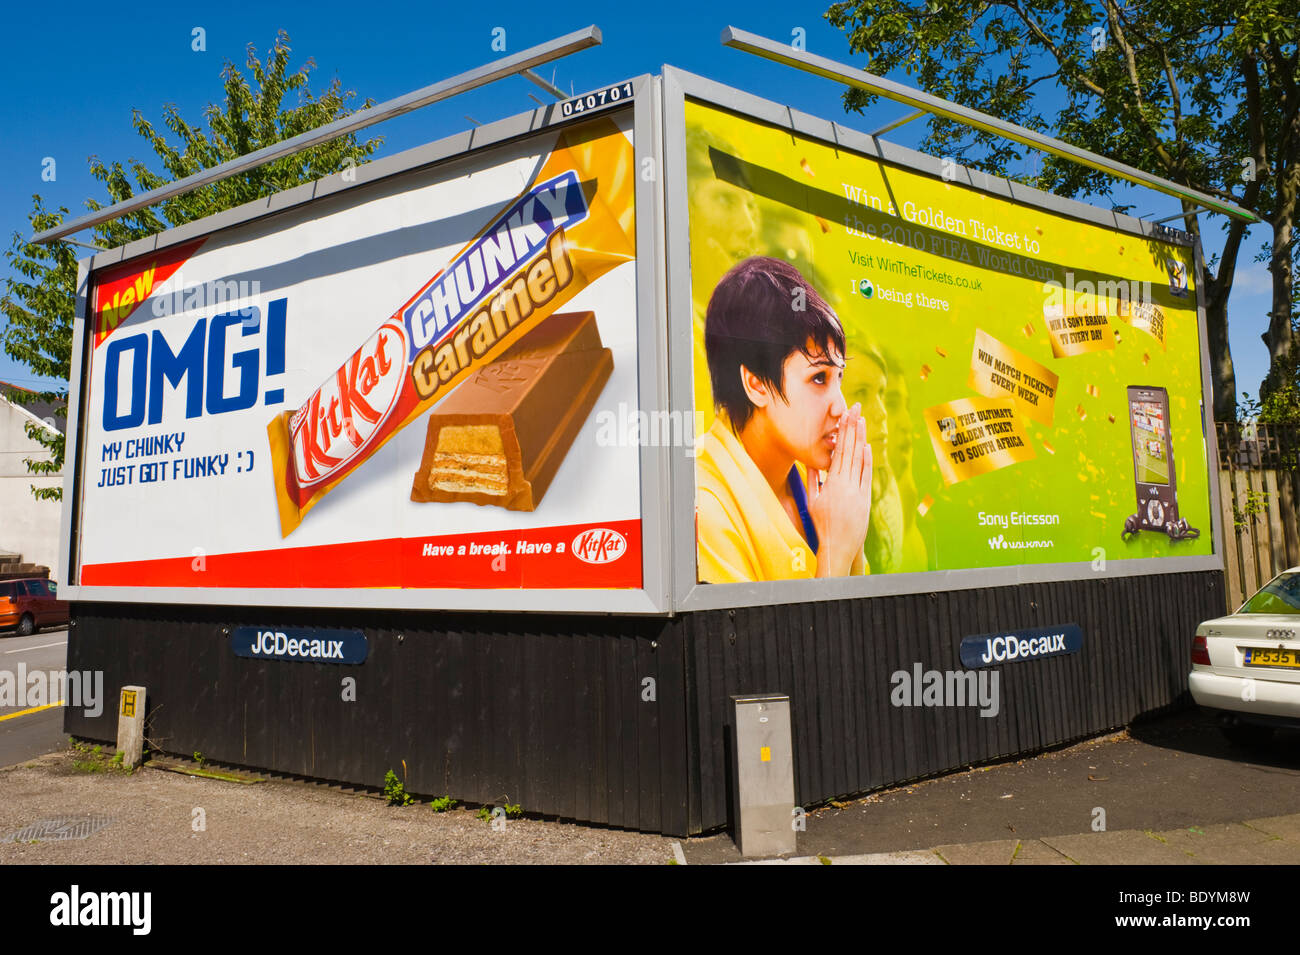 JCDecaux billboards for KitKat and Sony Ericsson Walkman in UK - Stock Image